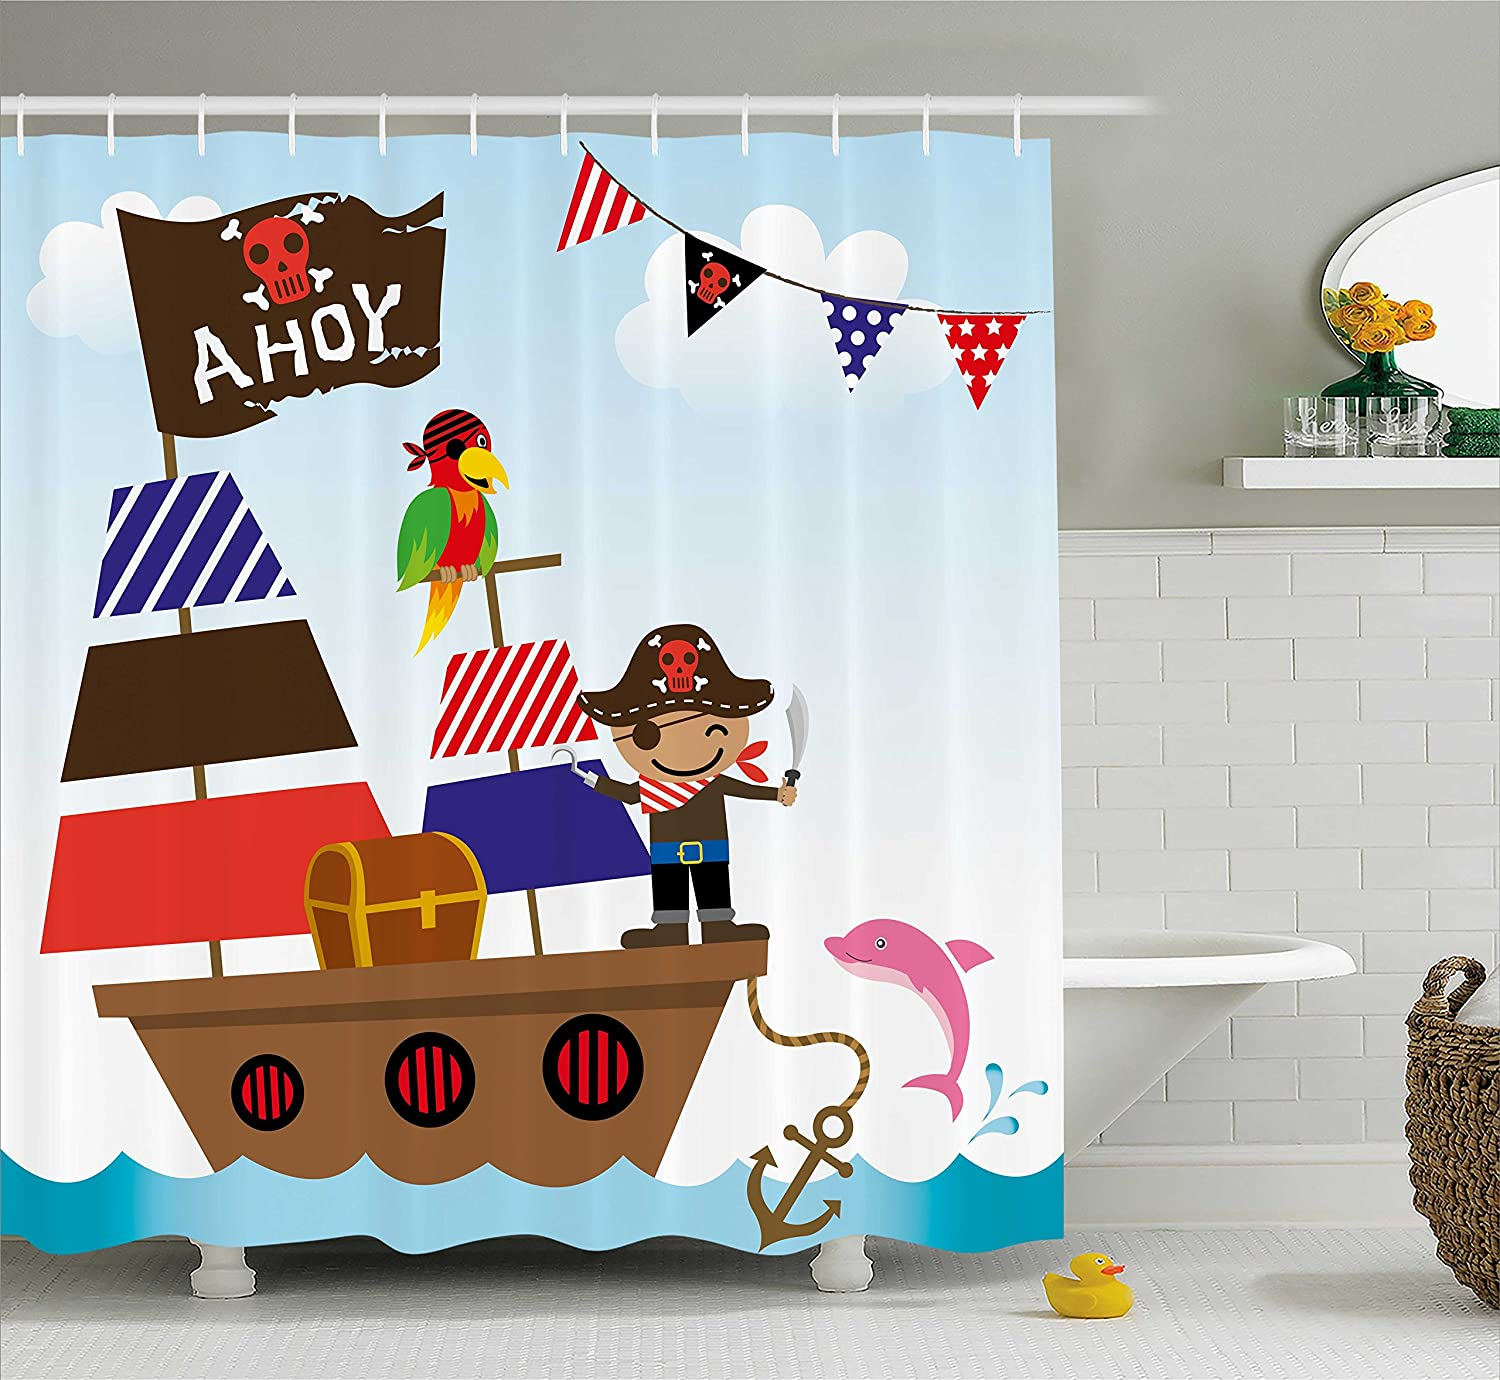 Kids Shower Curtain Ambesonne Ahoy Its a Boy Shower Curtain, Cute Pirate Kids Treasure Chest with Ship on Ocean Background Illustration, Fabric Bathroom Decor Set Shower Curtain for Boys Bathroom